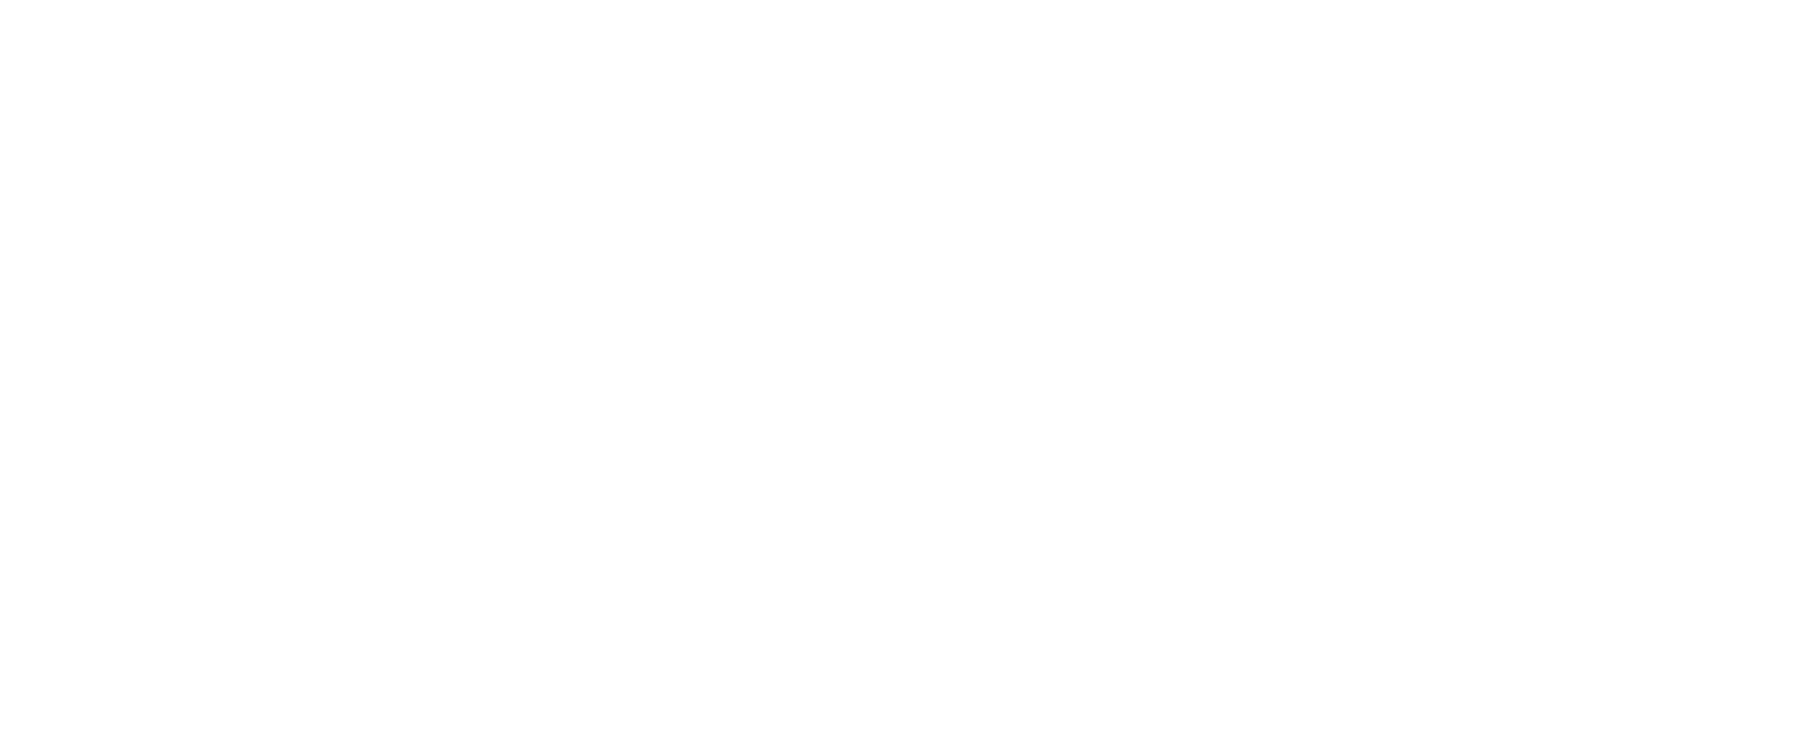 Weatherization logo white